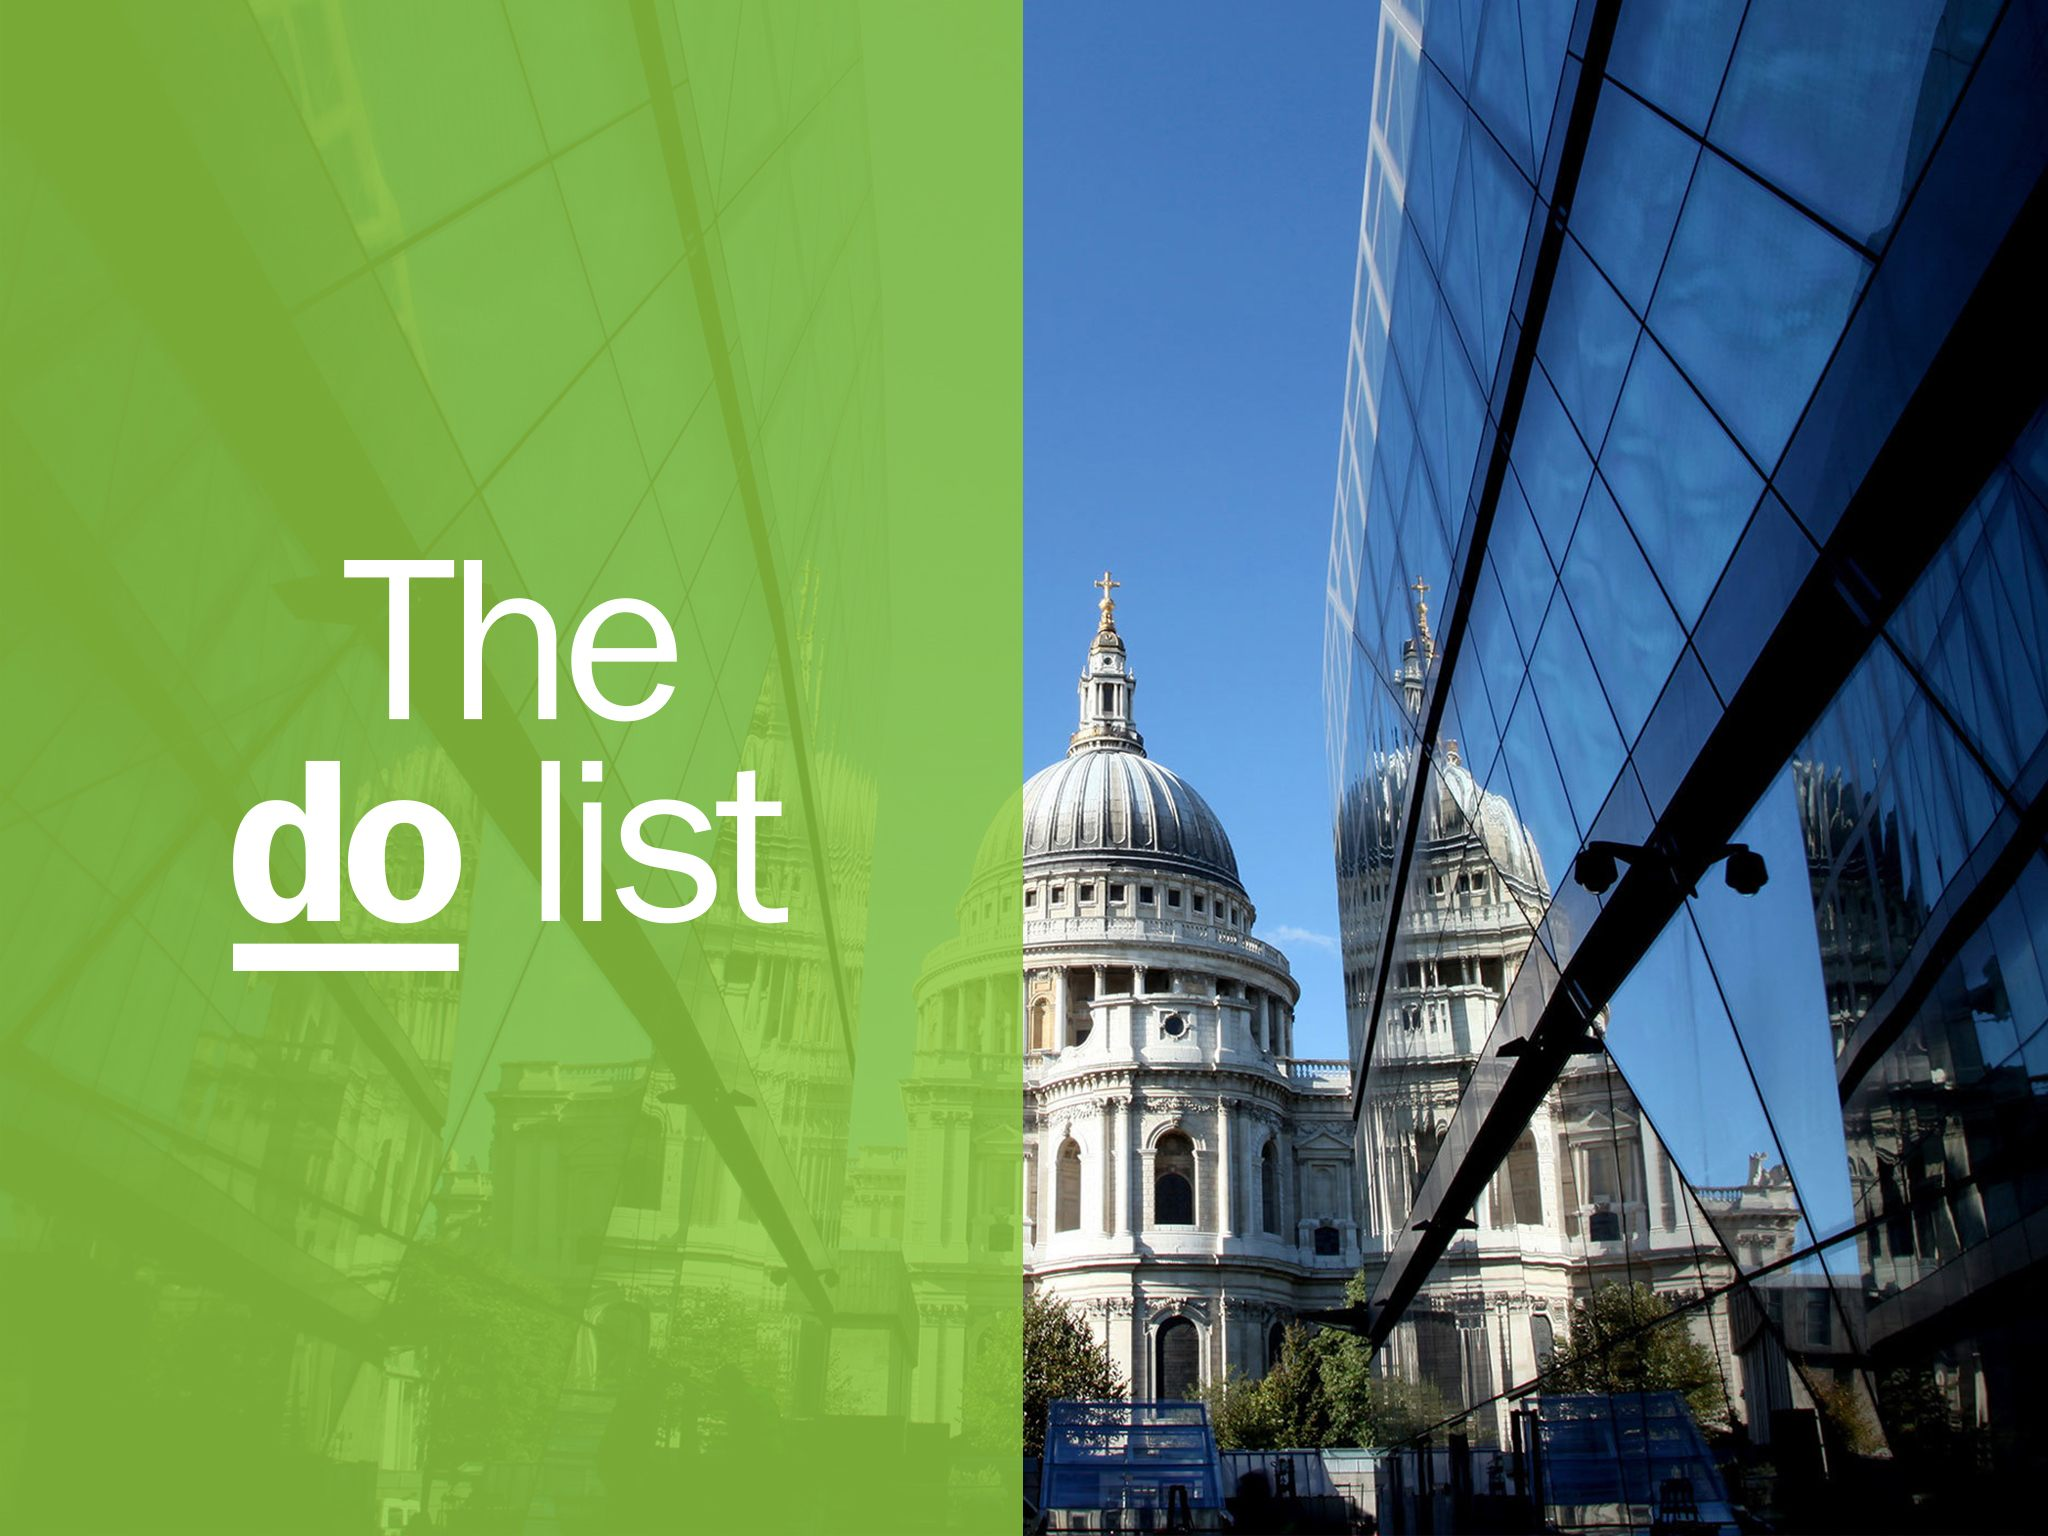 Lit 2 Places Moderne Magnifique 101 Amazing Things to Do In London – Your Ultimate Guide to London